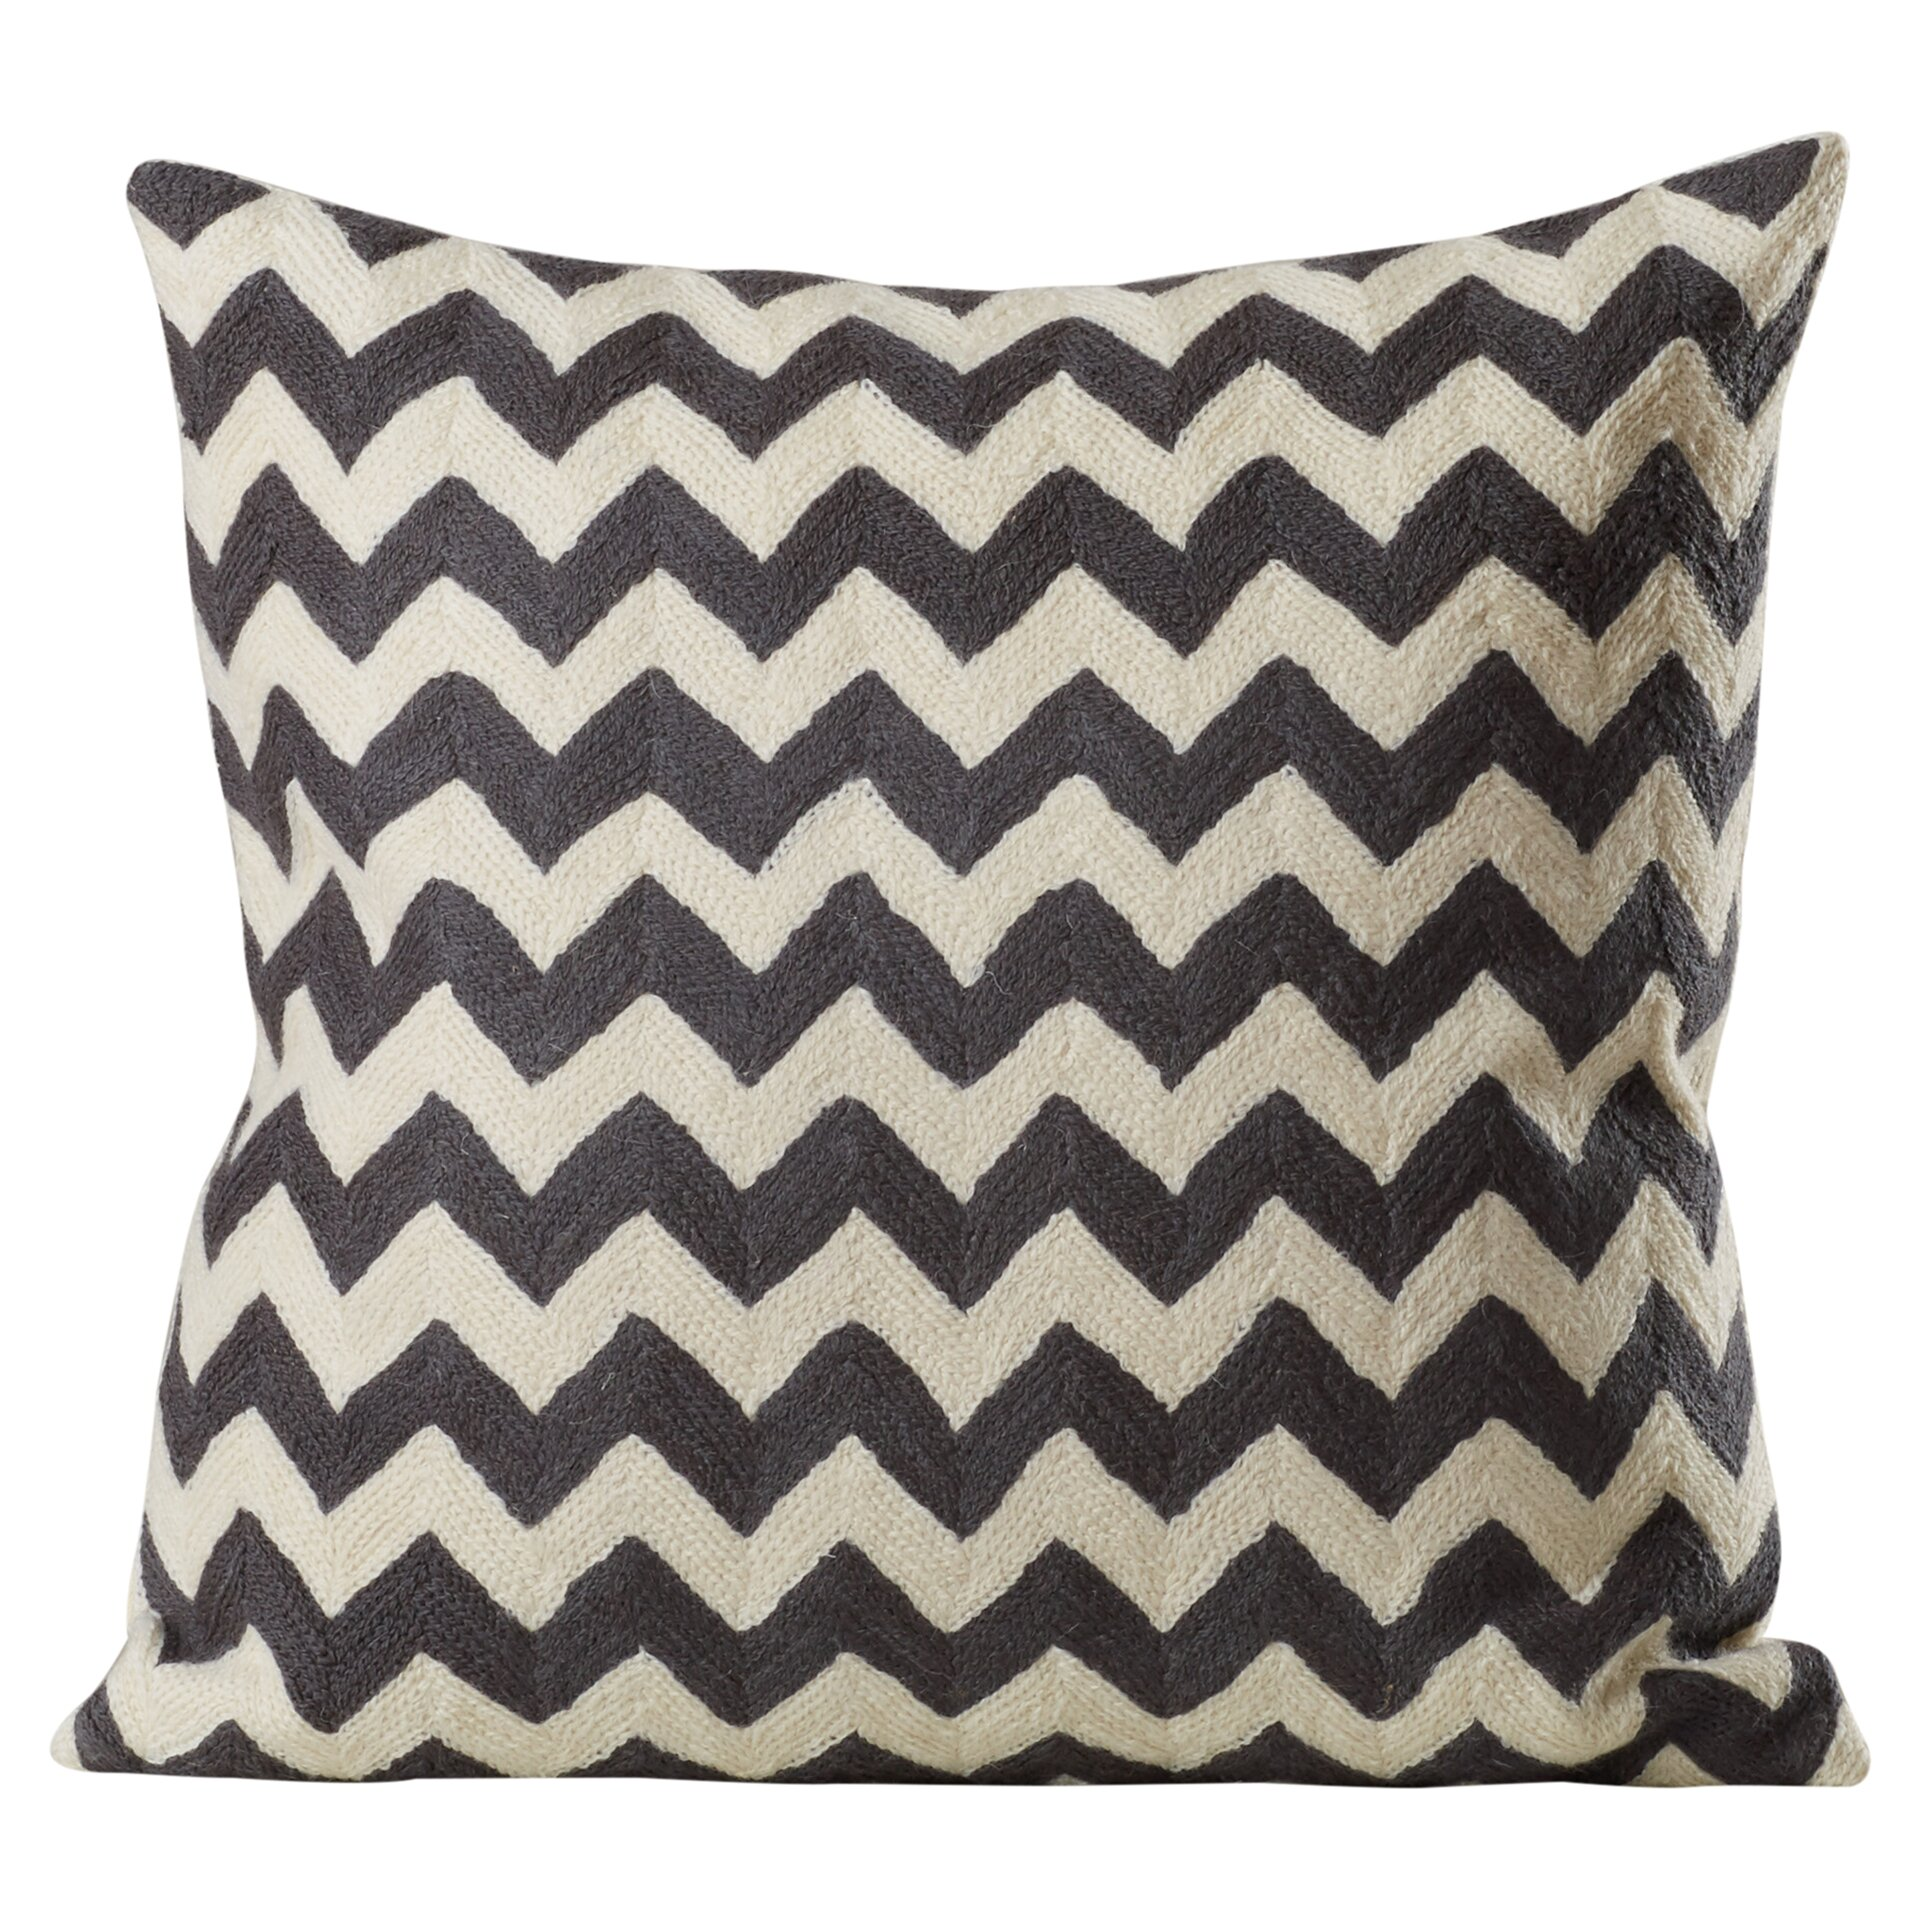 Max Studio Home Decorative Pillows : Brayden Studio Jeramiah Striped Decorative Cotton Throw Pillow & Reviews Wayfair